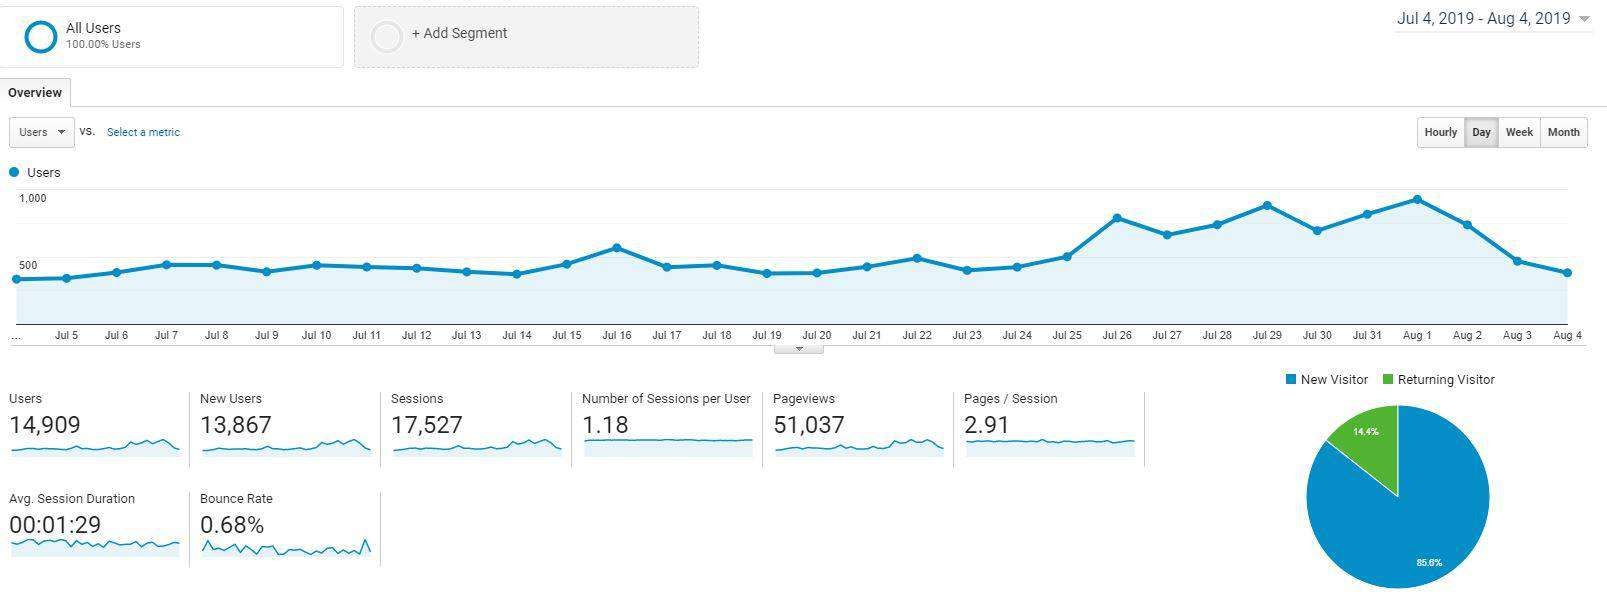 Myths about SEO - Kingdom Bloggers 30 day stats